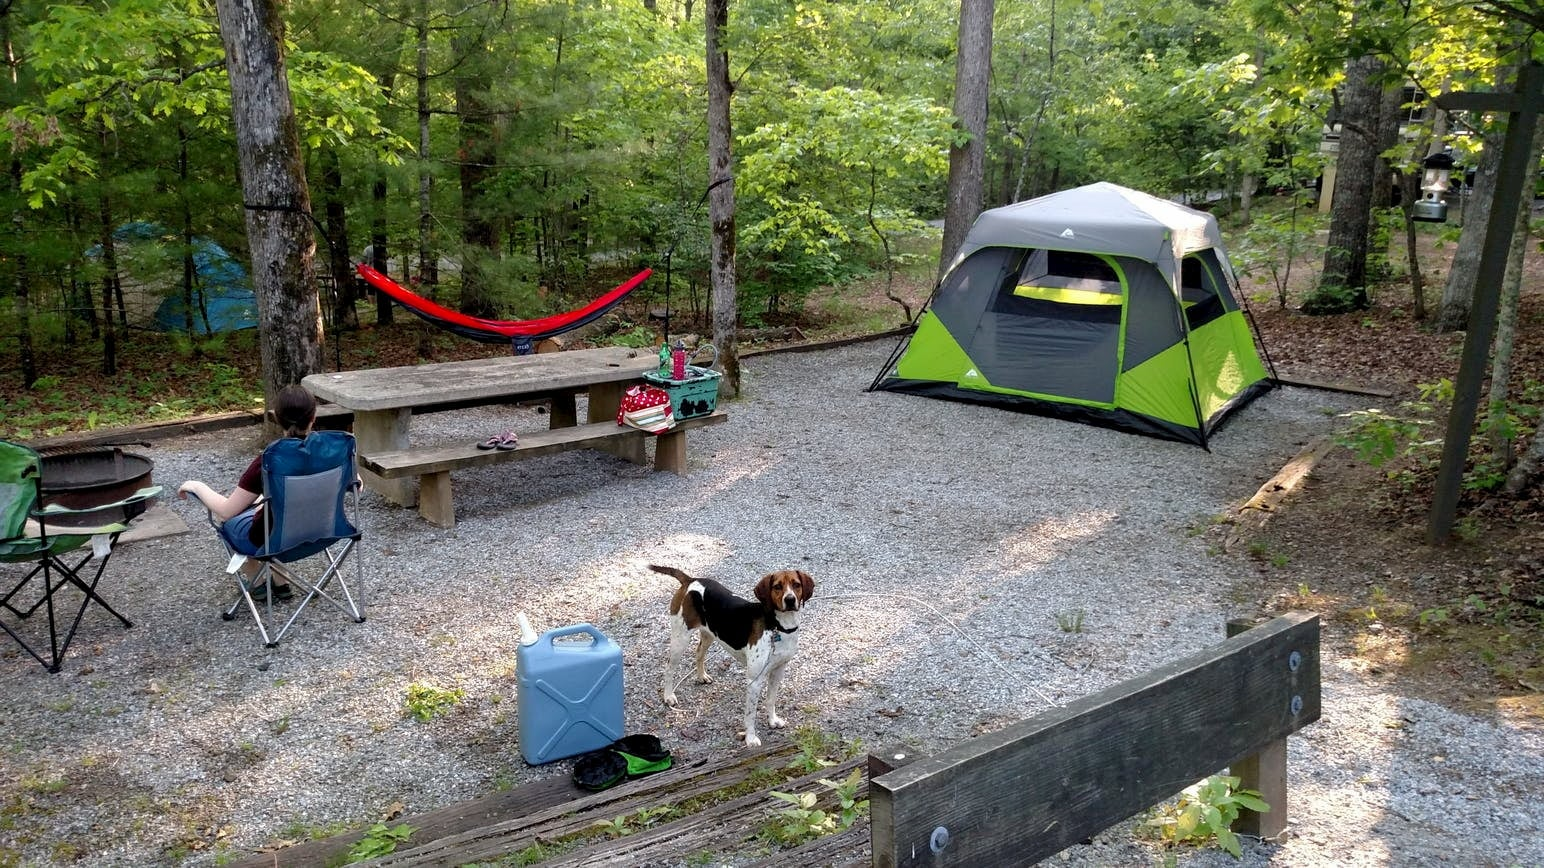 Beagle standing in Lake Powhatan campsite with tent, hammock and picnic table in the forest.